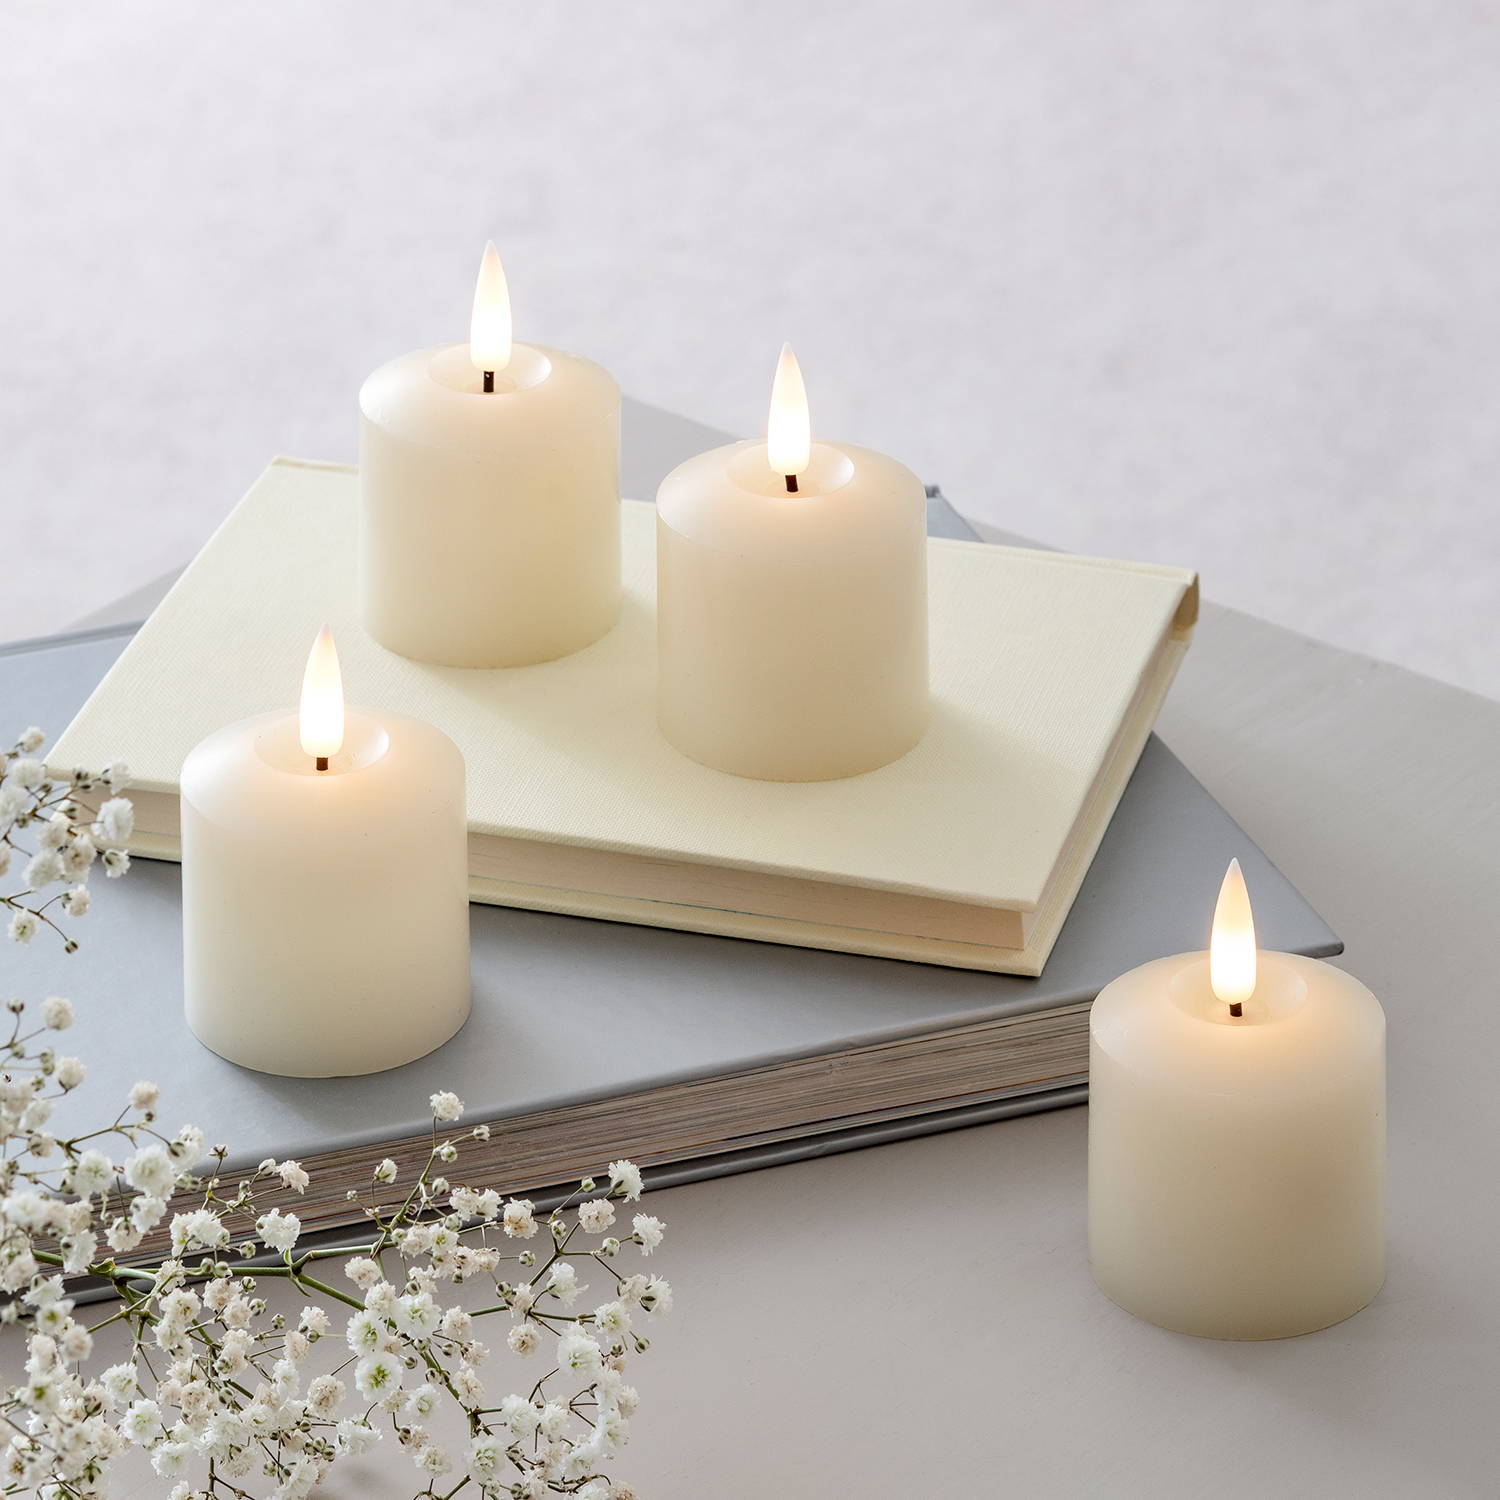 4 small TruGlow votive LED candles